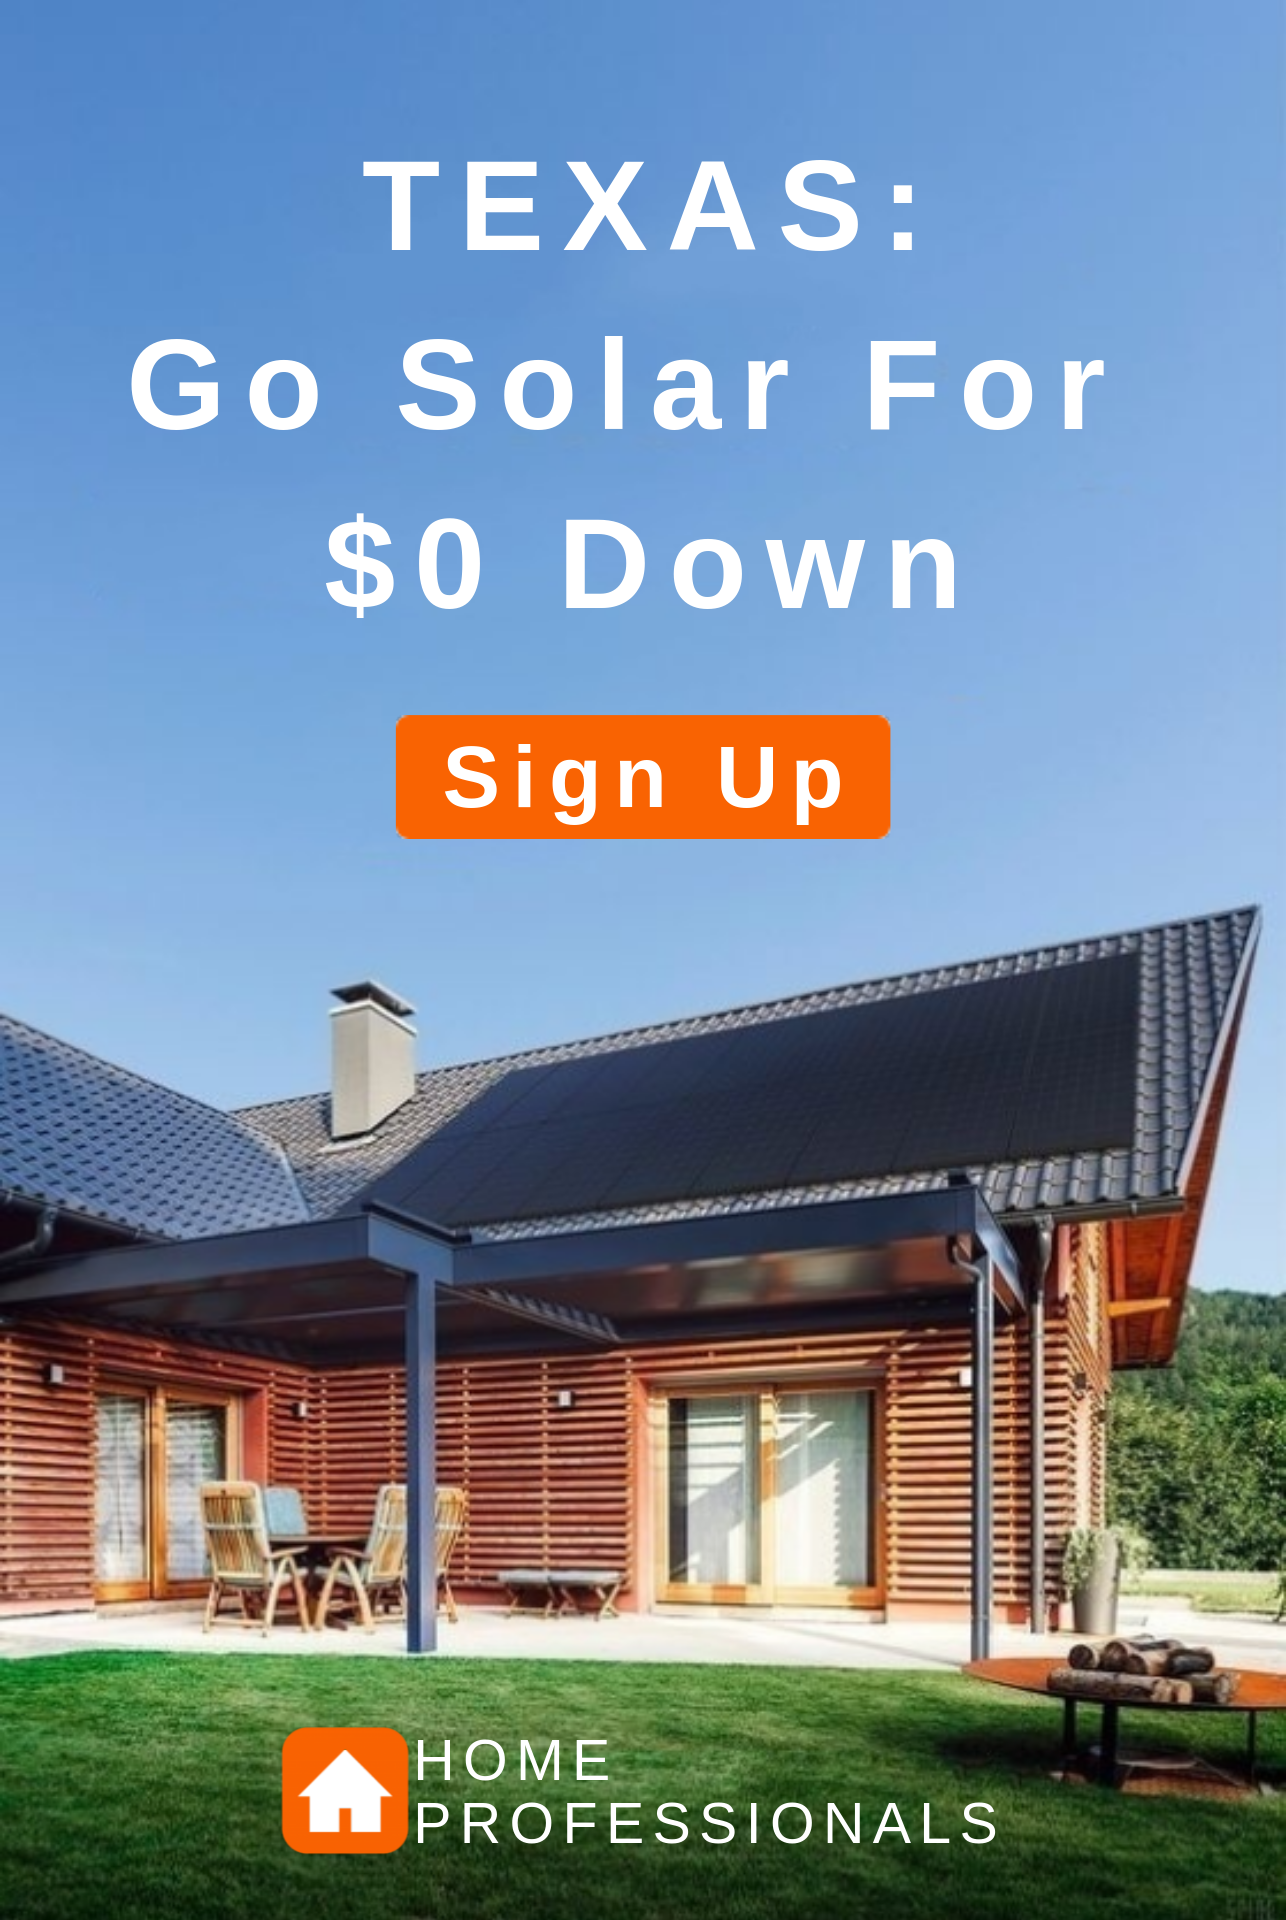 Affordable Solar Program Launched in Texas for Middle